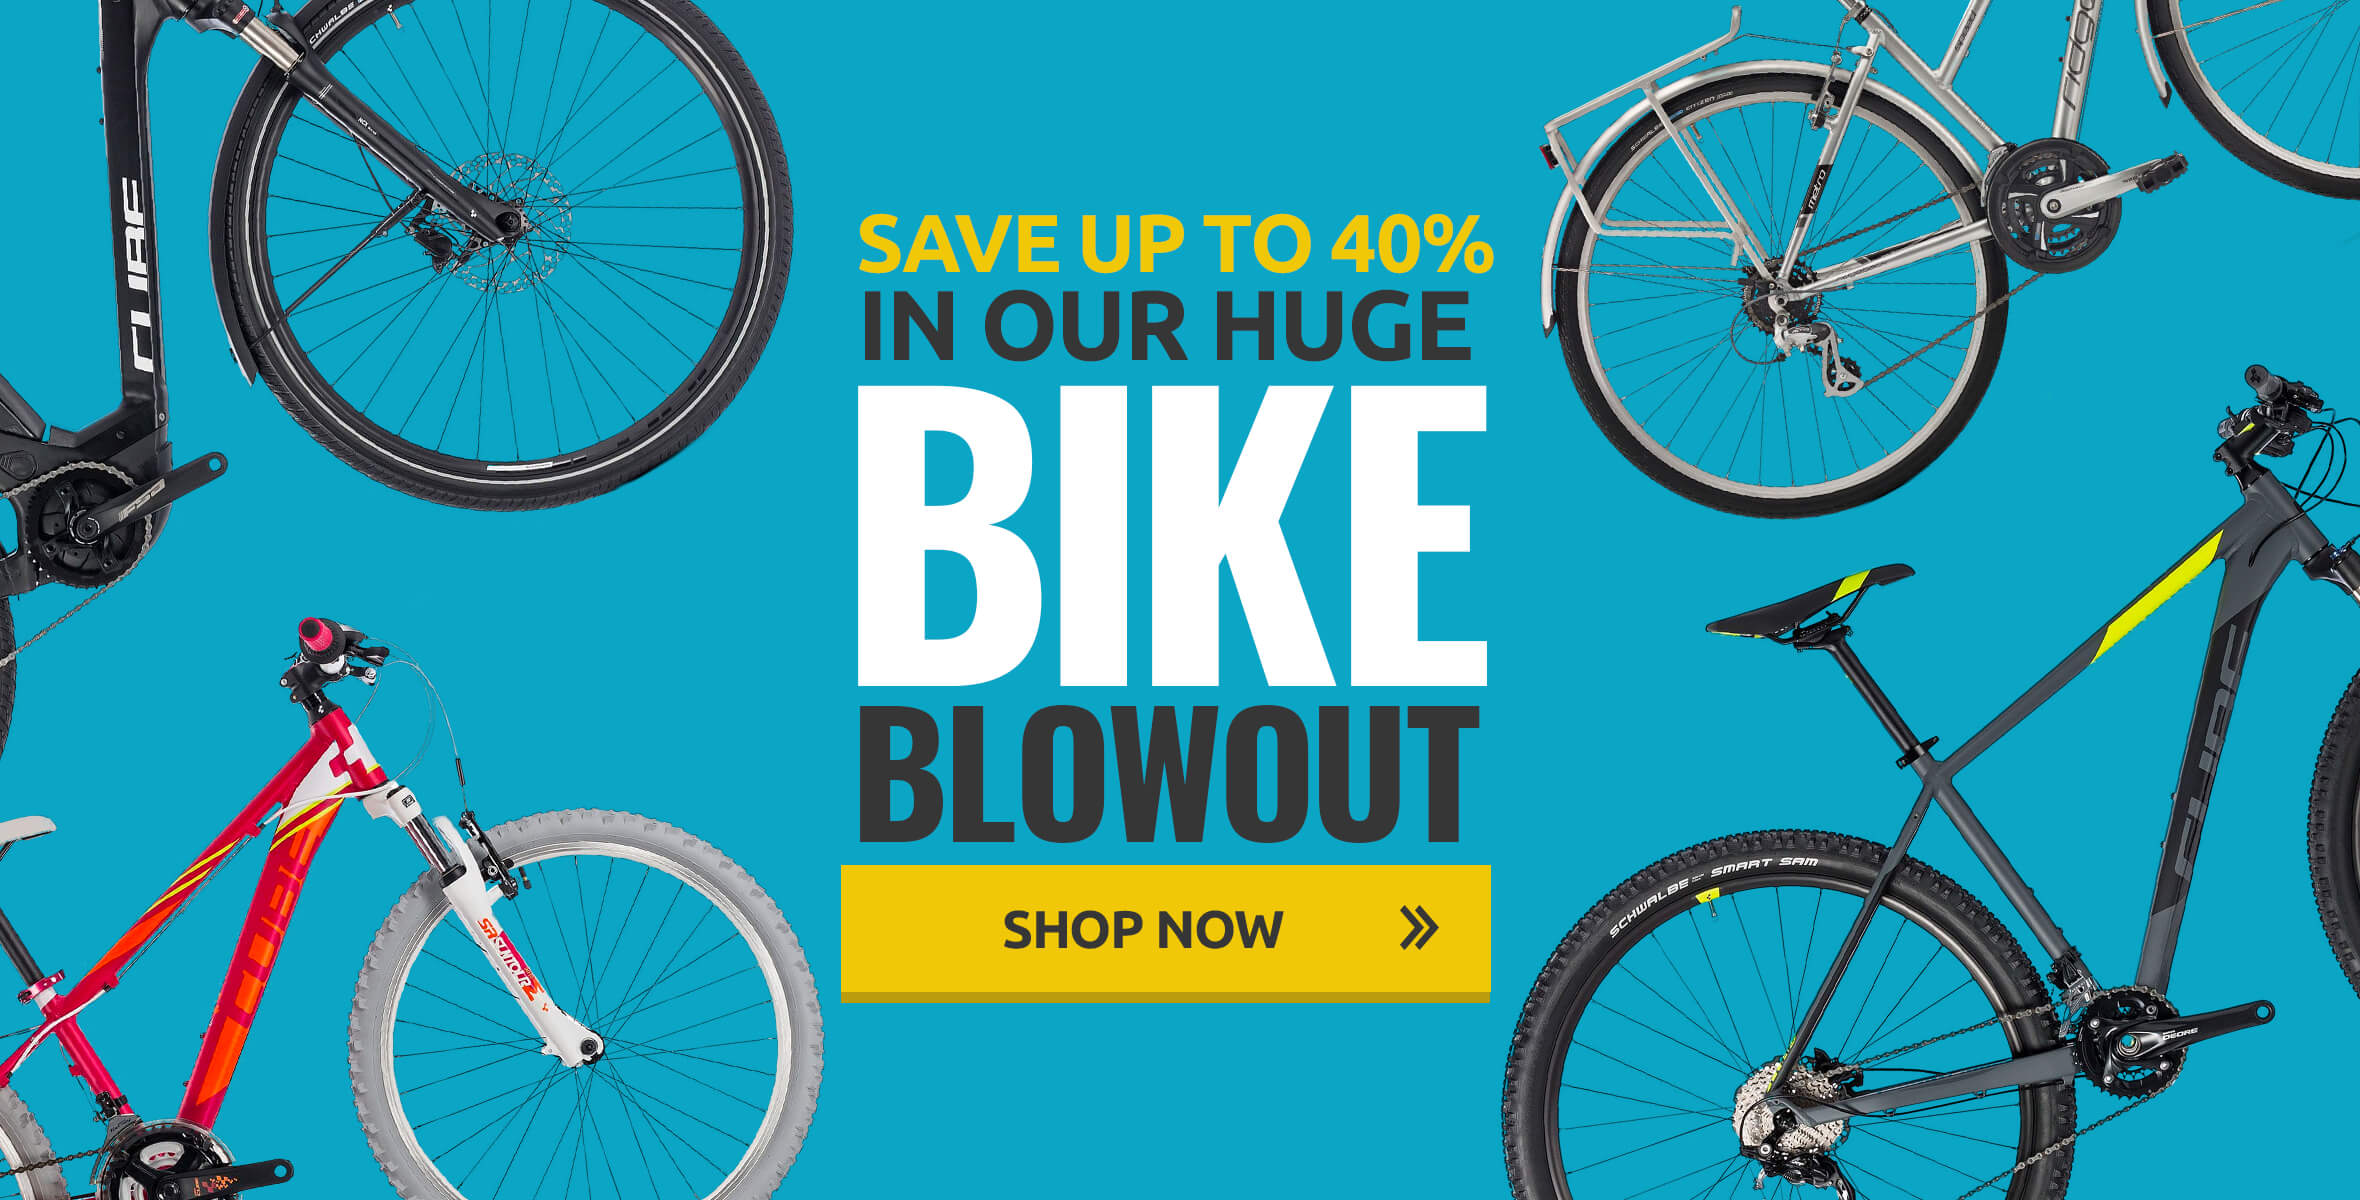 Save up to 40% in our huge bike blowout